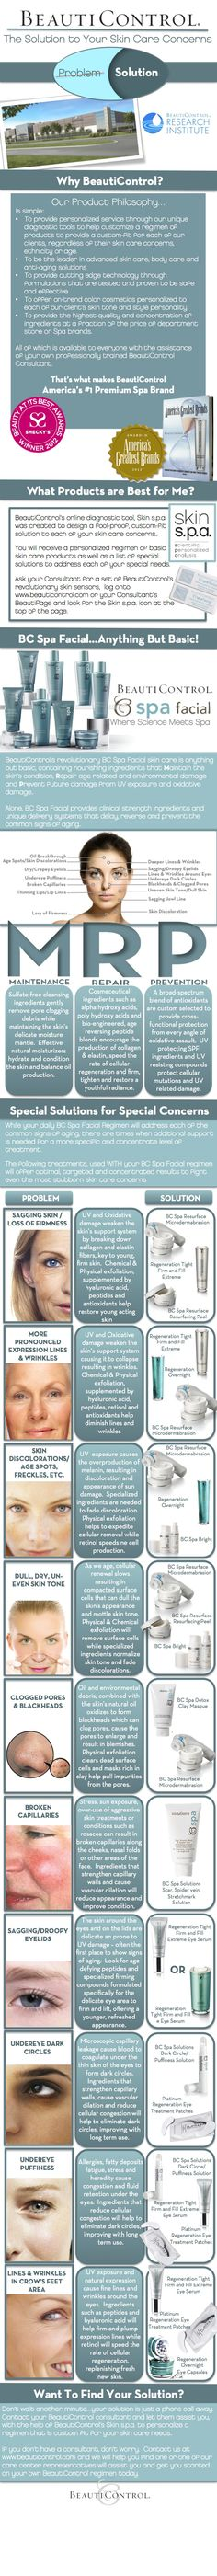 Got problems? BeautiControl has the solution for all your skin care concerns.